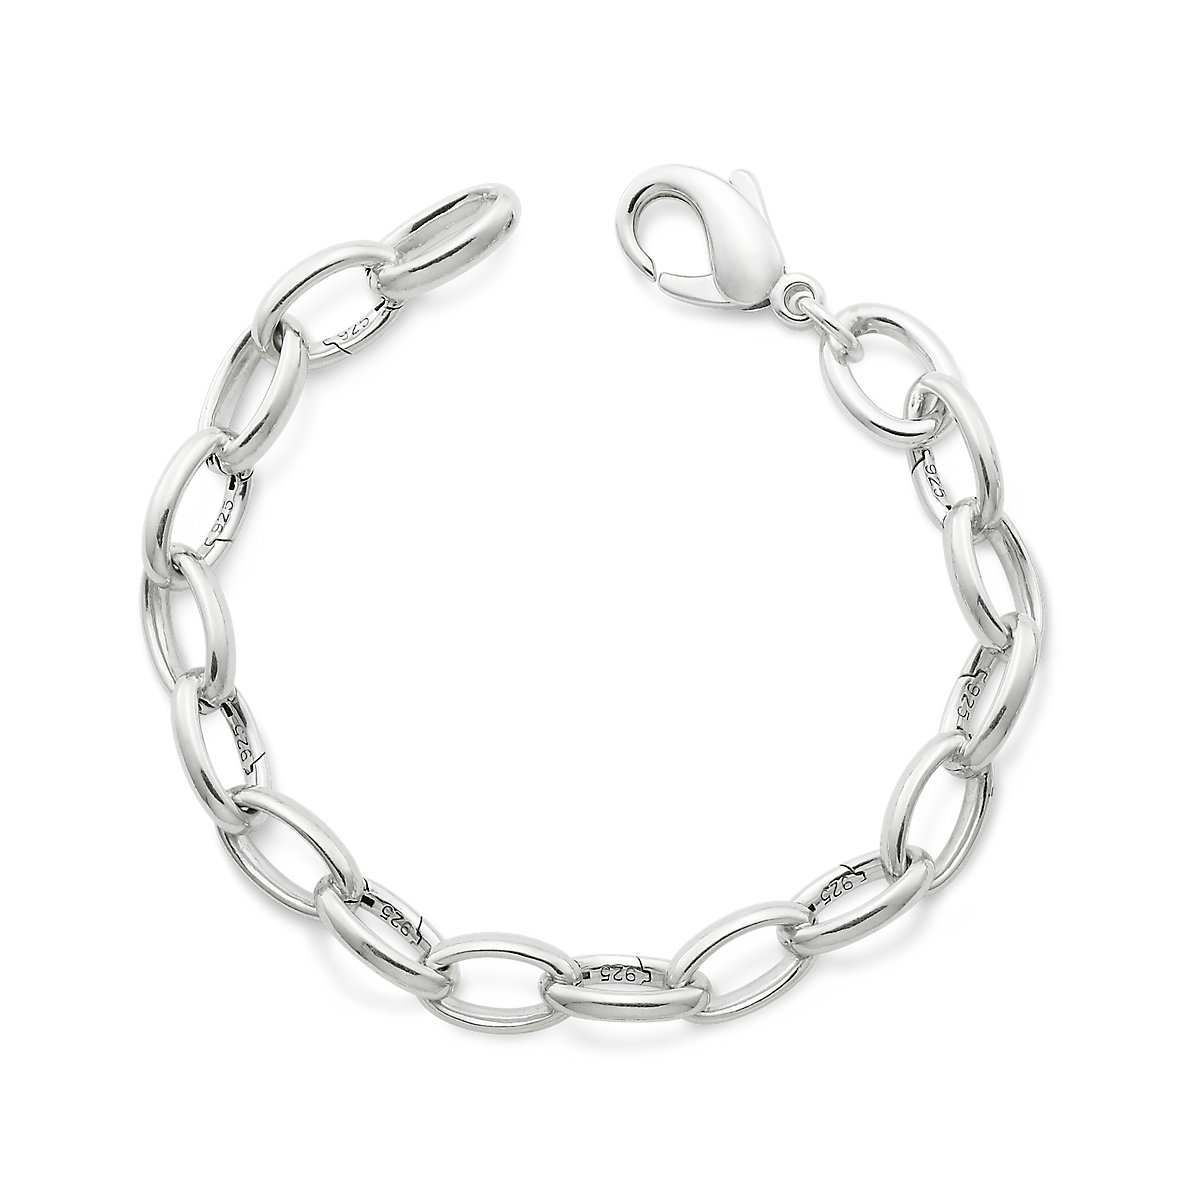 4ec241e3c Changeable Charm Bracelet - James Avery